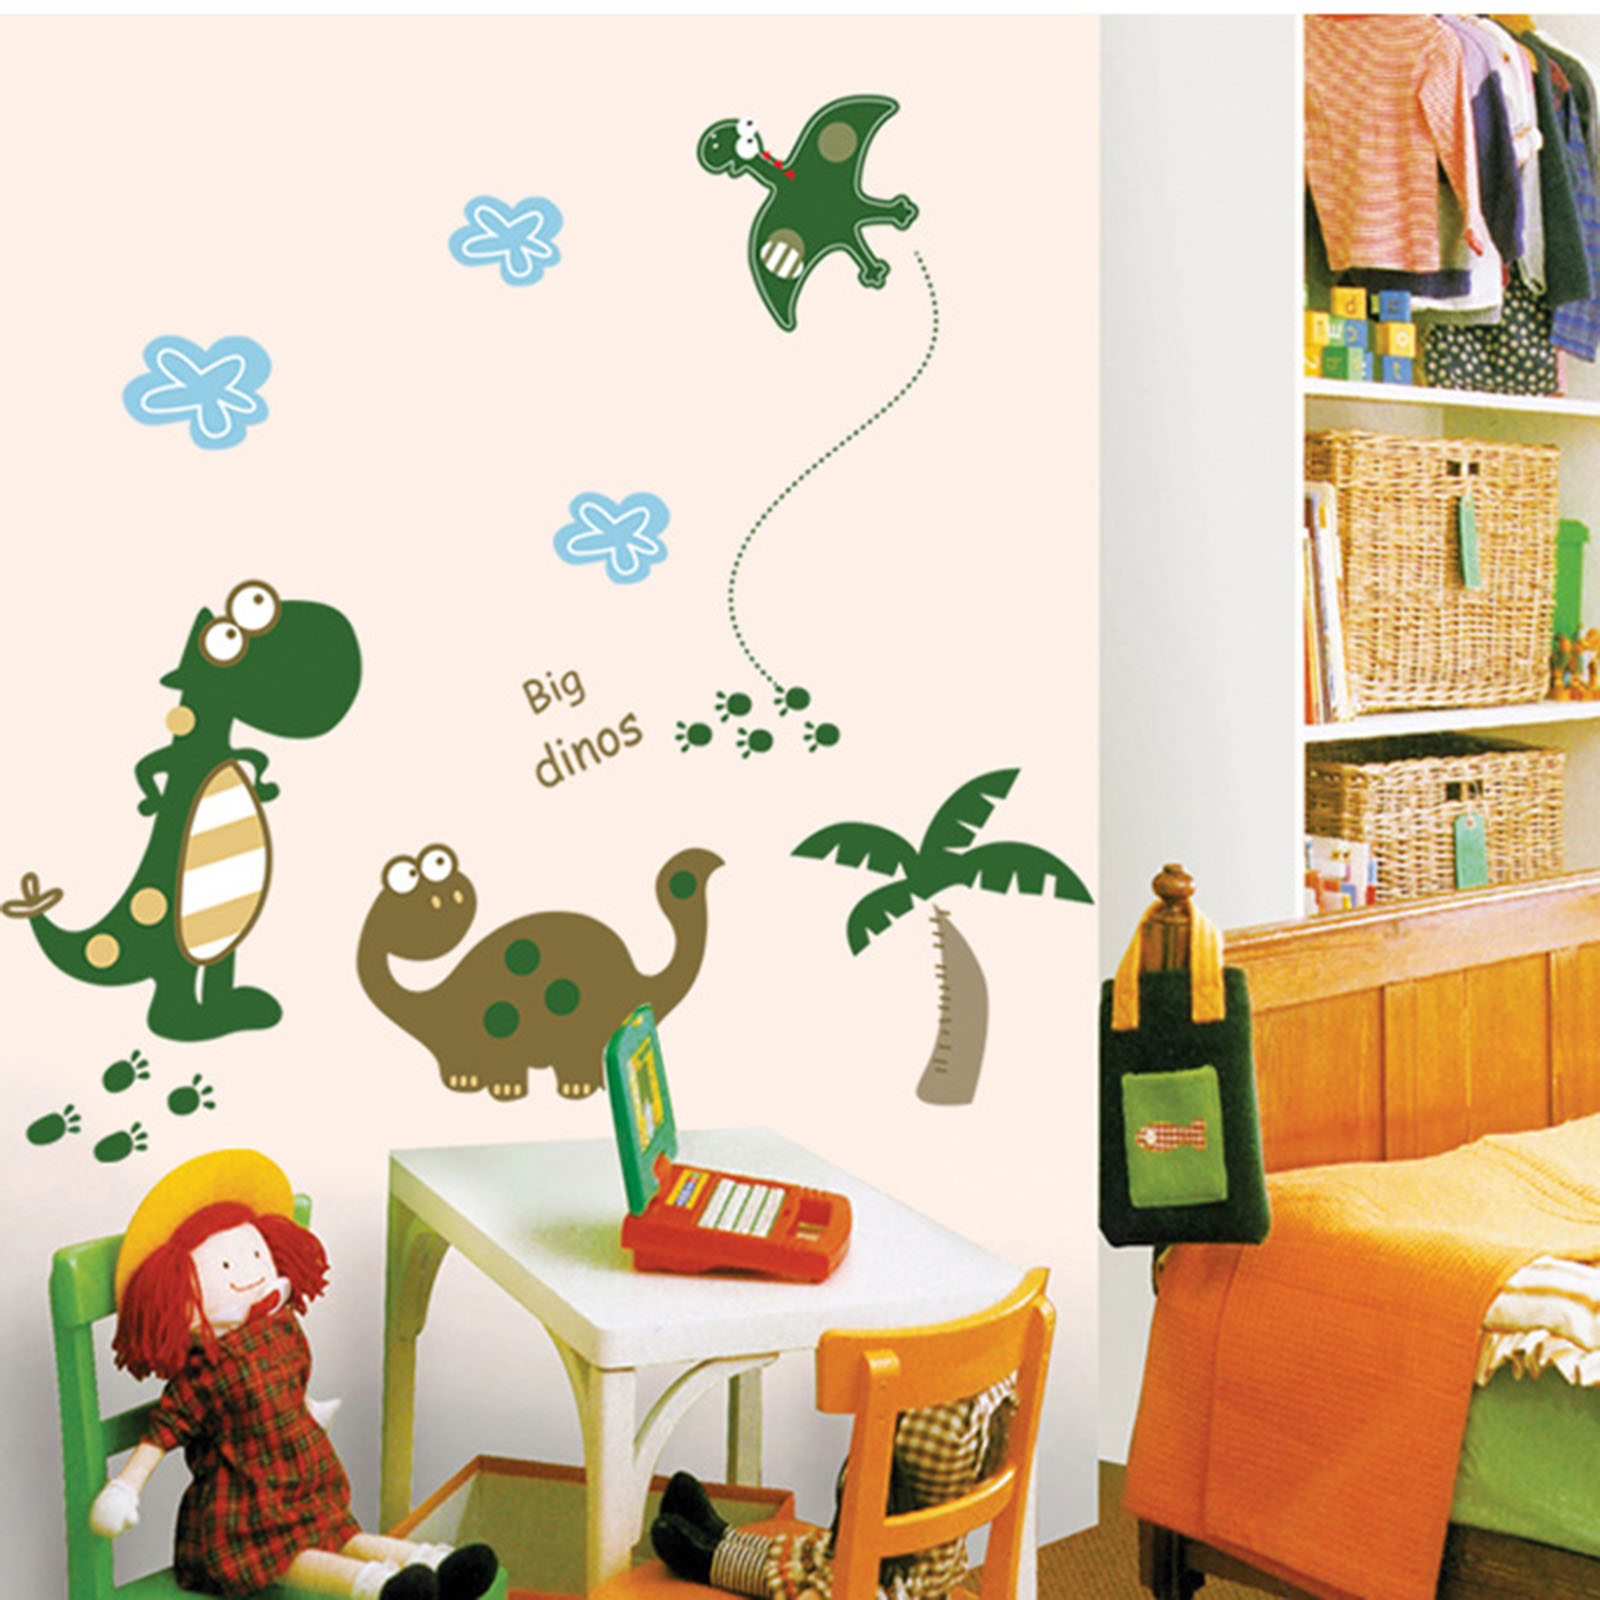 Kindergarten Nursery Room Cute Dinosaur Pattern Mural Decal Art